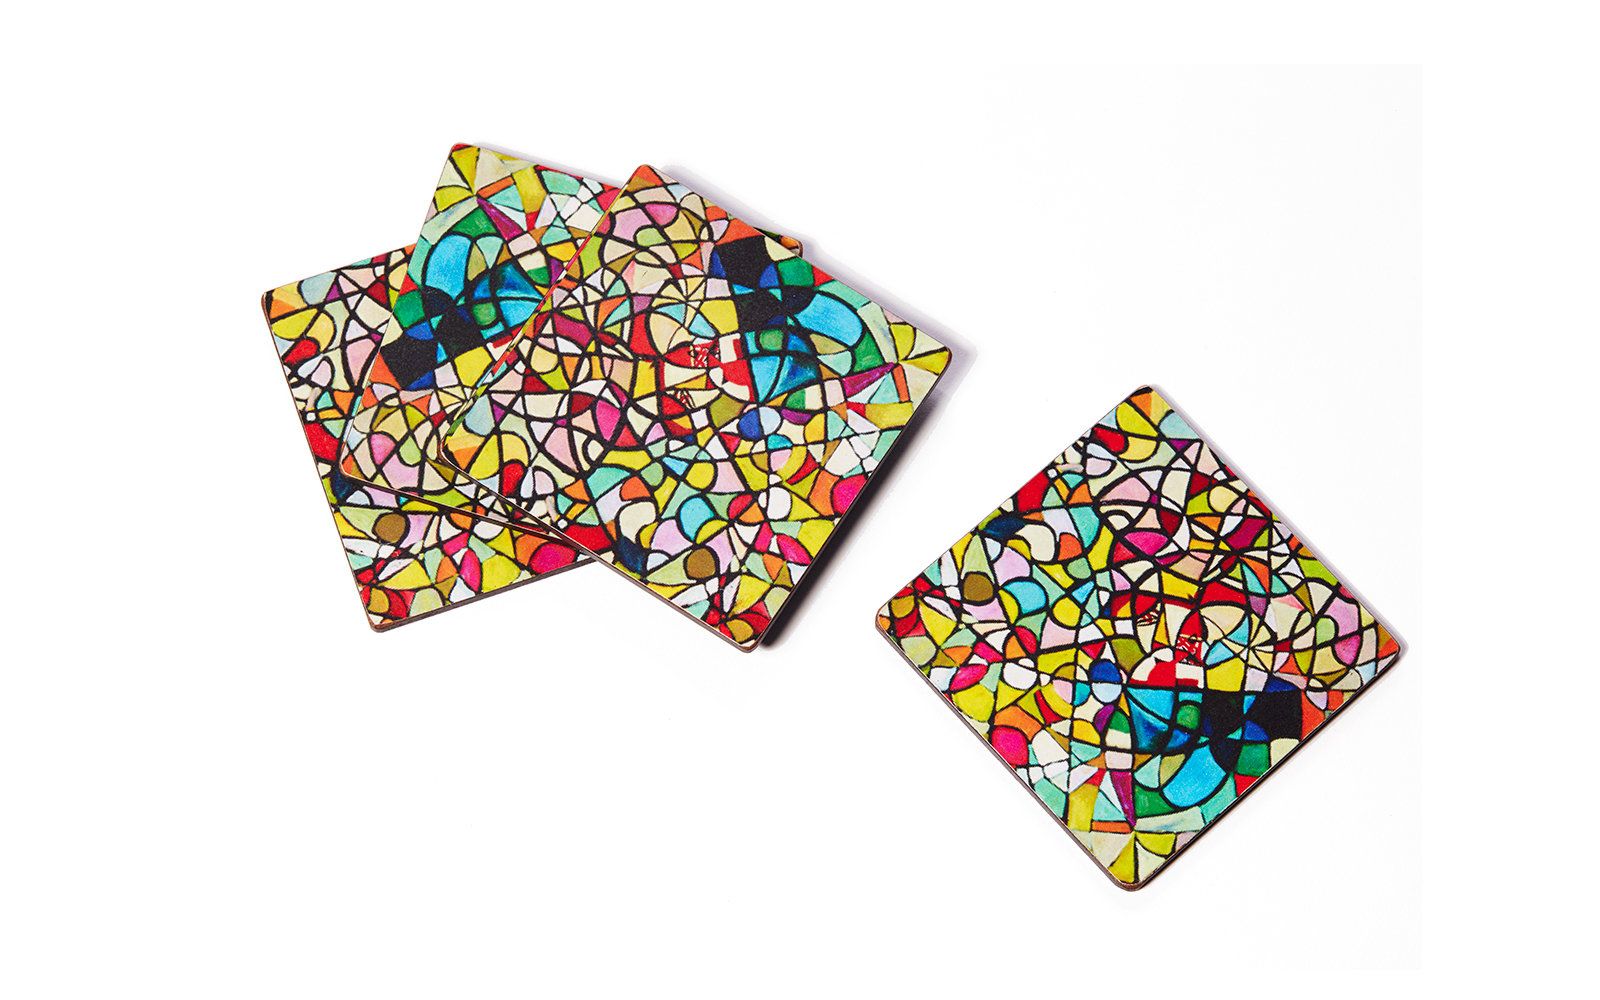 patterned coasters from Istanbul Museum of Modern Art